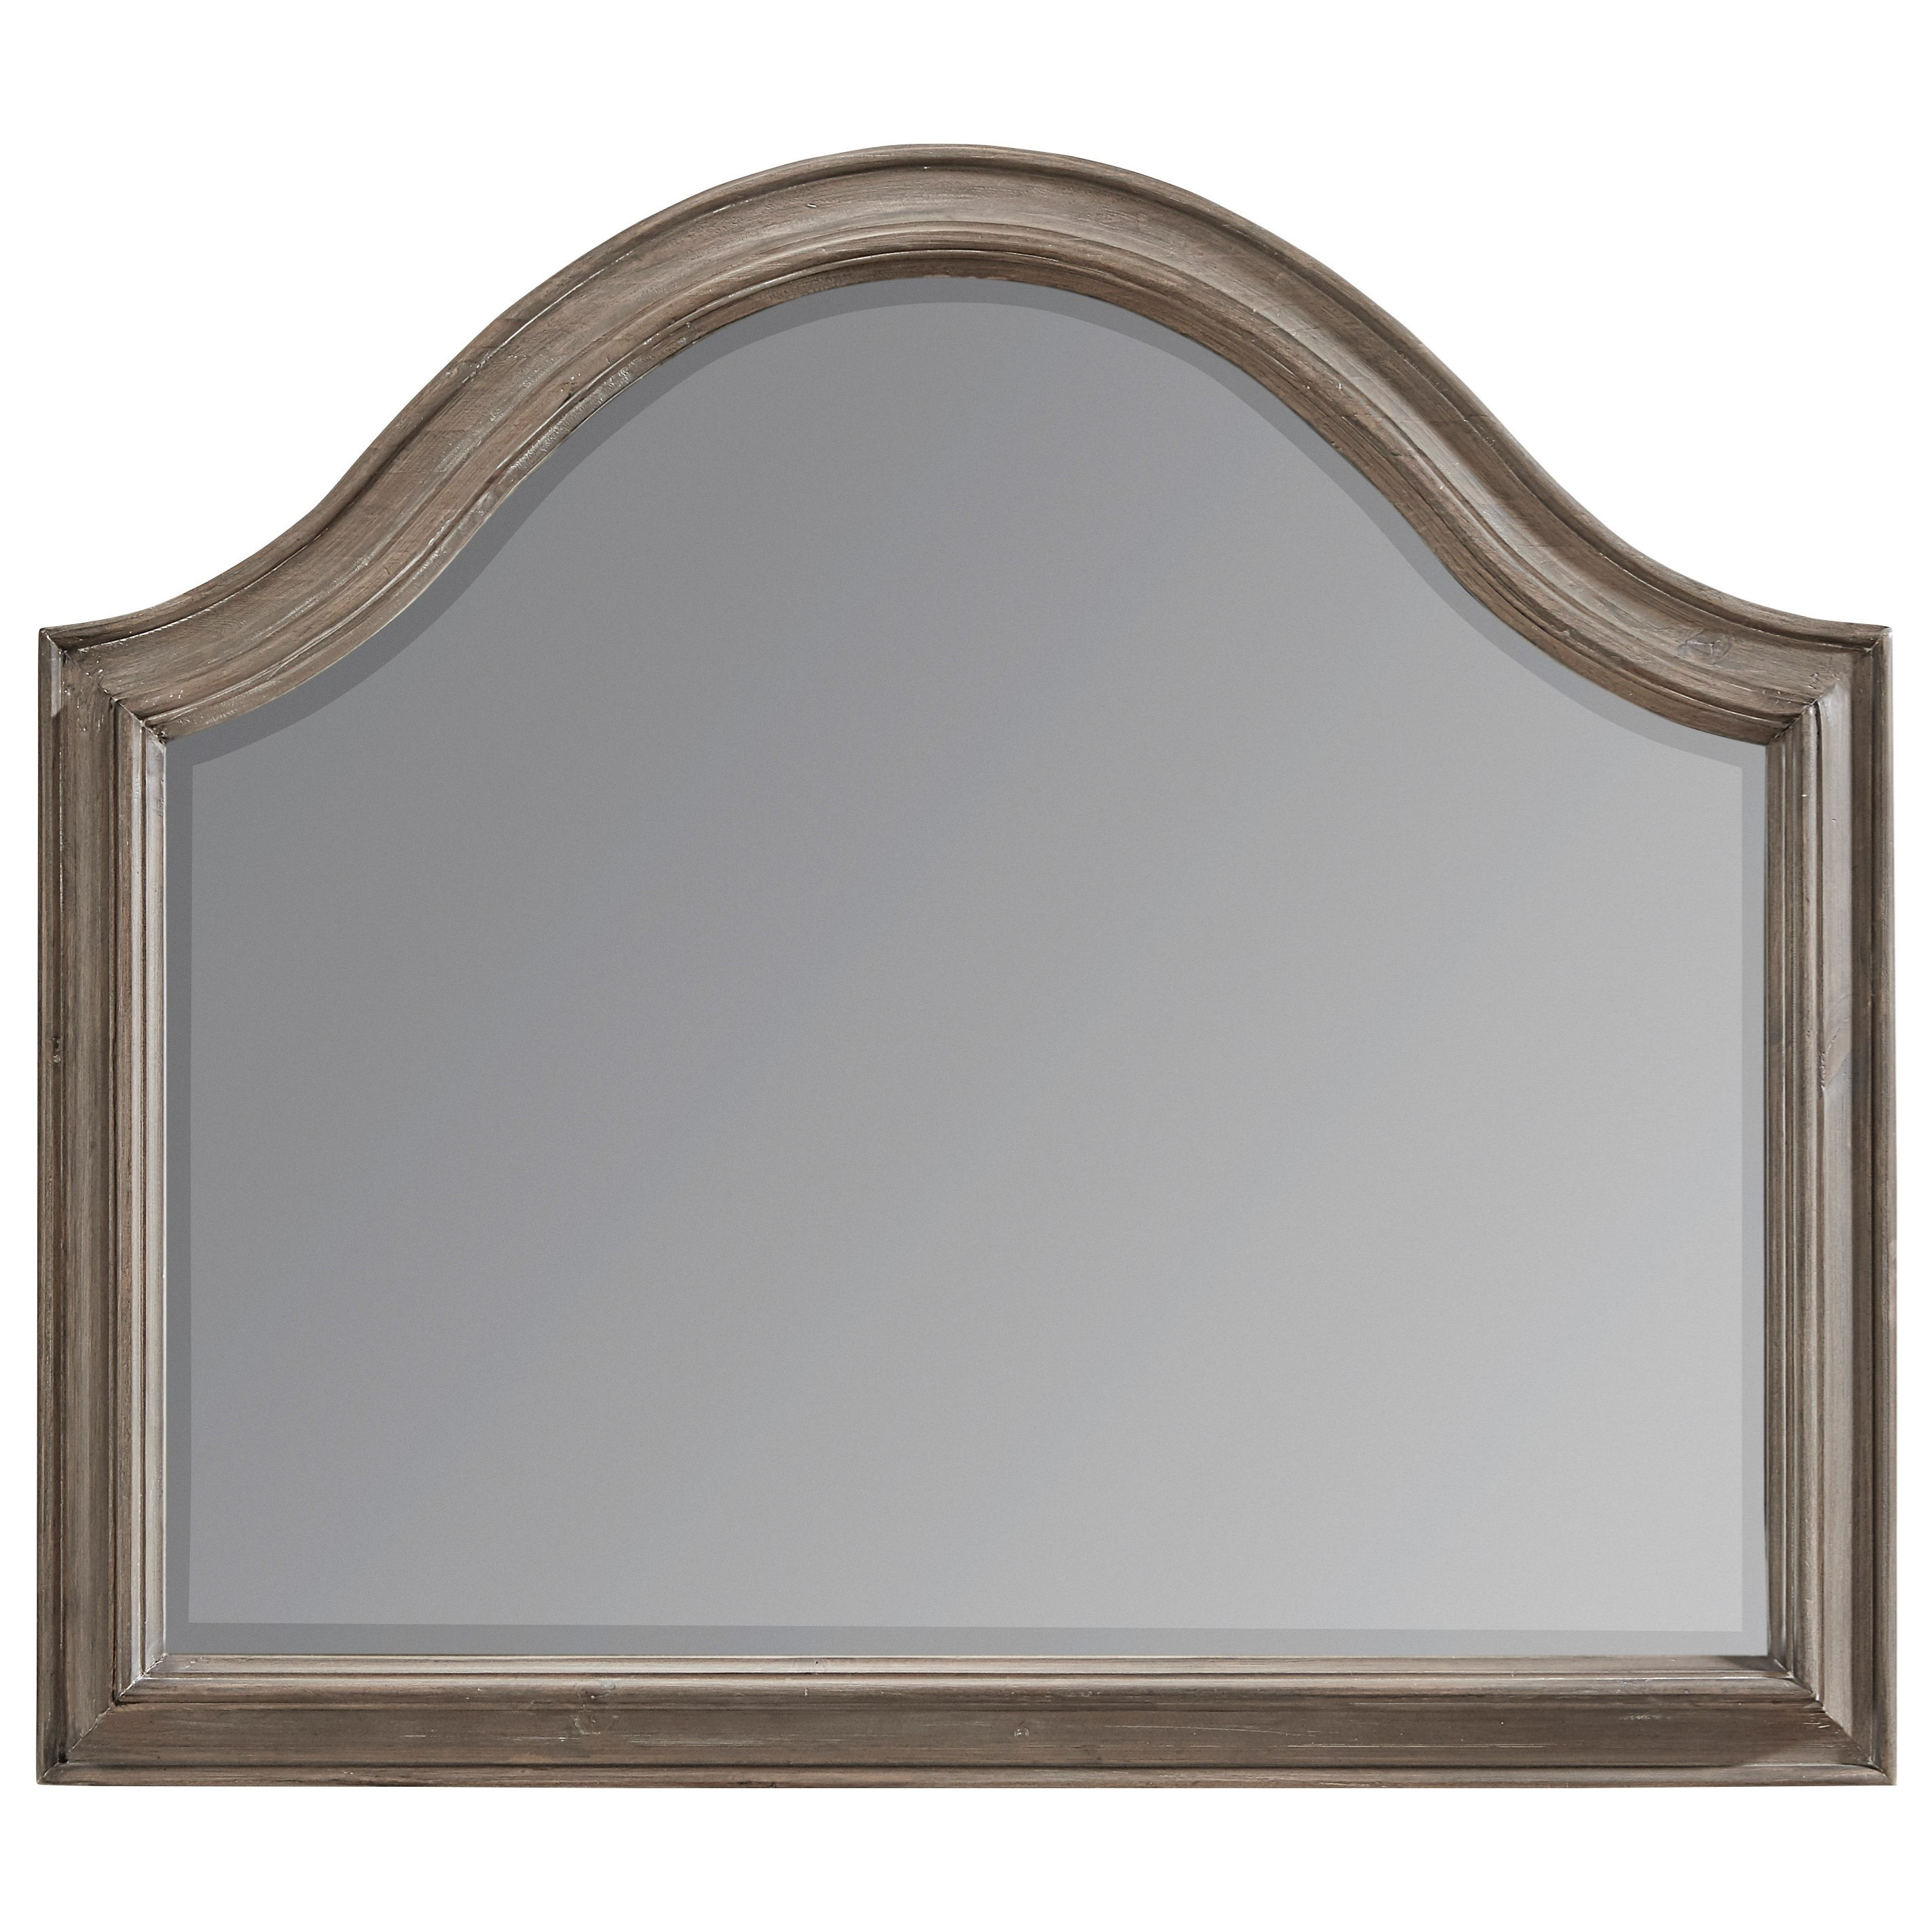 A.R.T. Furniture Inc Allie Mirror - Item Number: 404120-2639